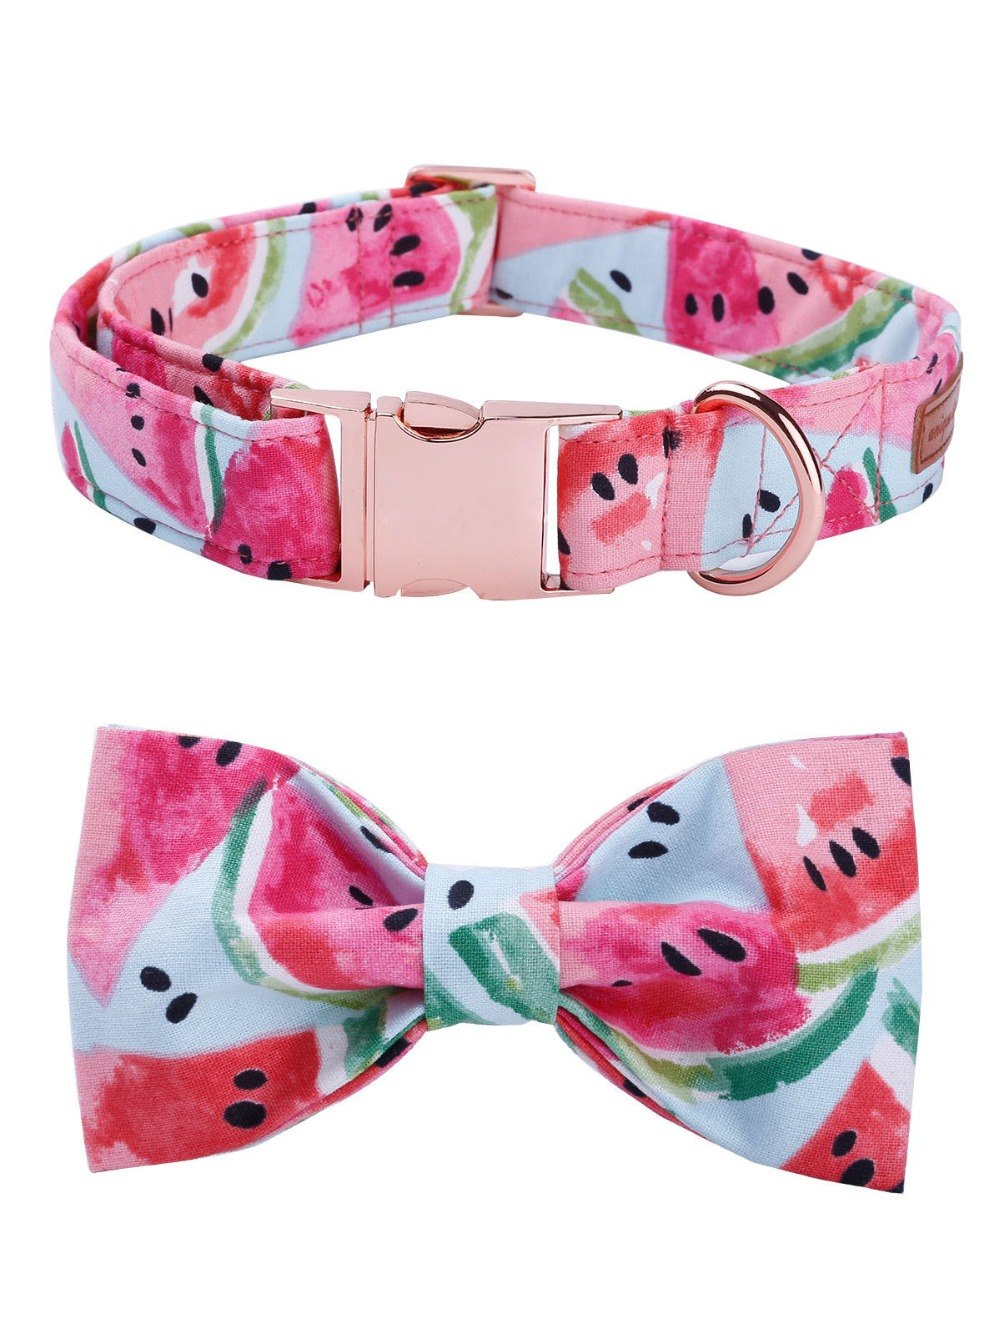 watermelon dog collar and leash watermelon dog collar watermelon collar